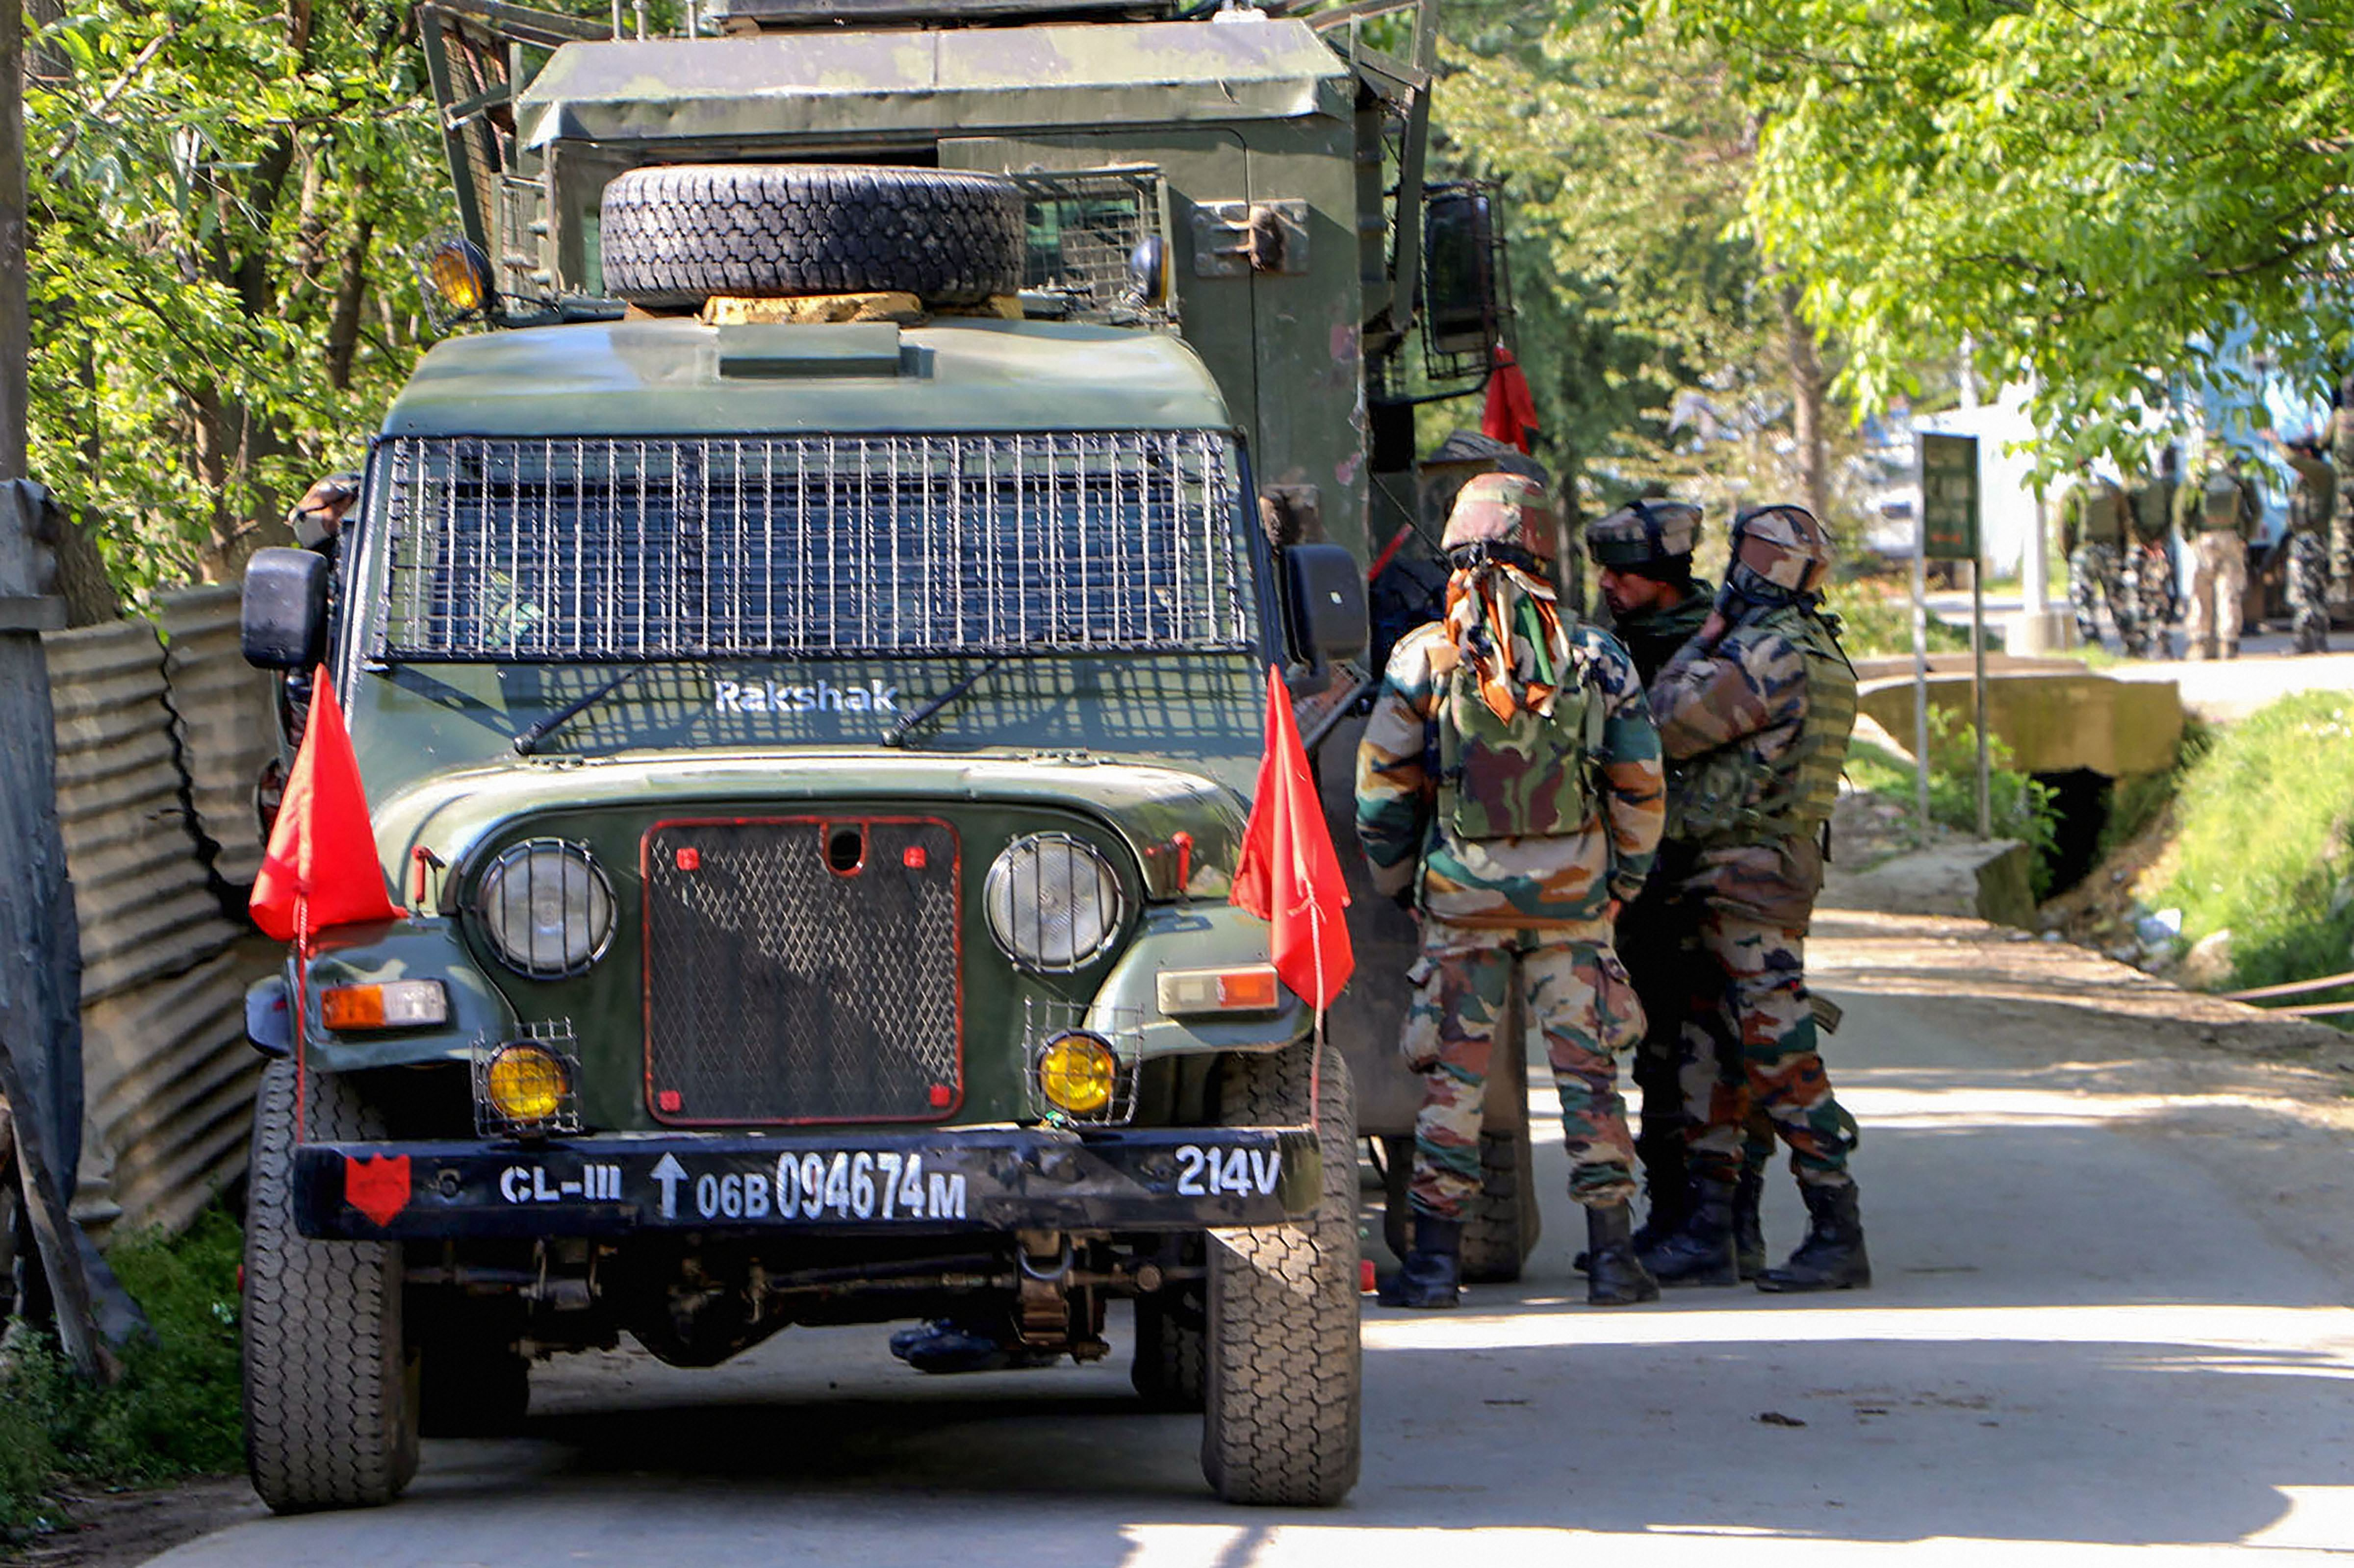 Security forces cordon off the area during an encounter with militants at Melhoora village in Jammu and Kashmirs Shopian district, Wednesday, April 22, 2020. The Hindu correspondent Peerzada Ashiq was booked for his follow up report on Shopian encounter, police said.